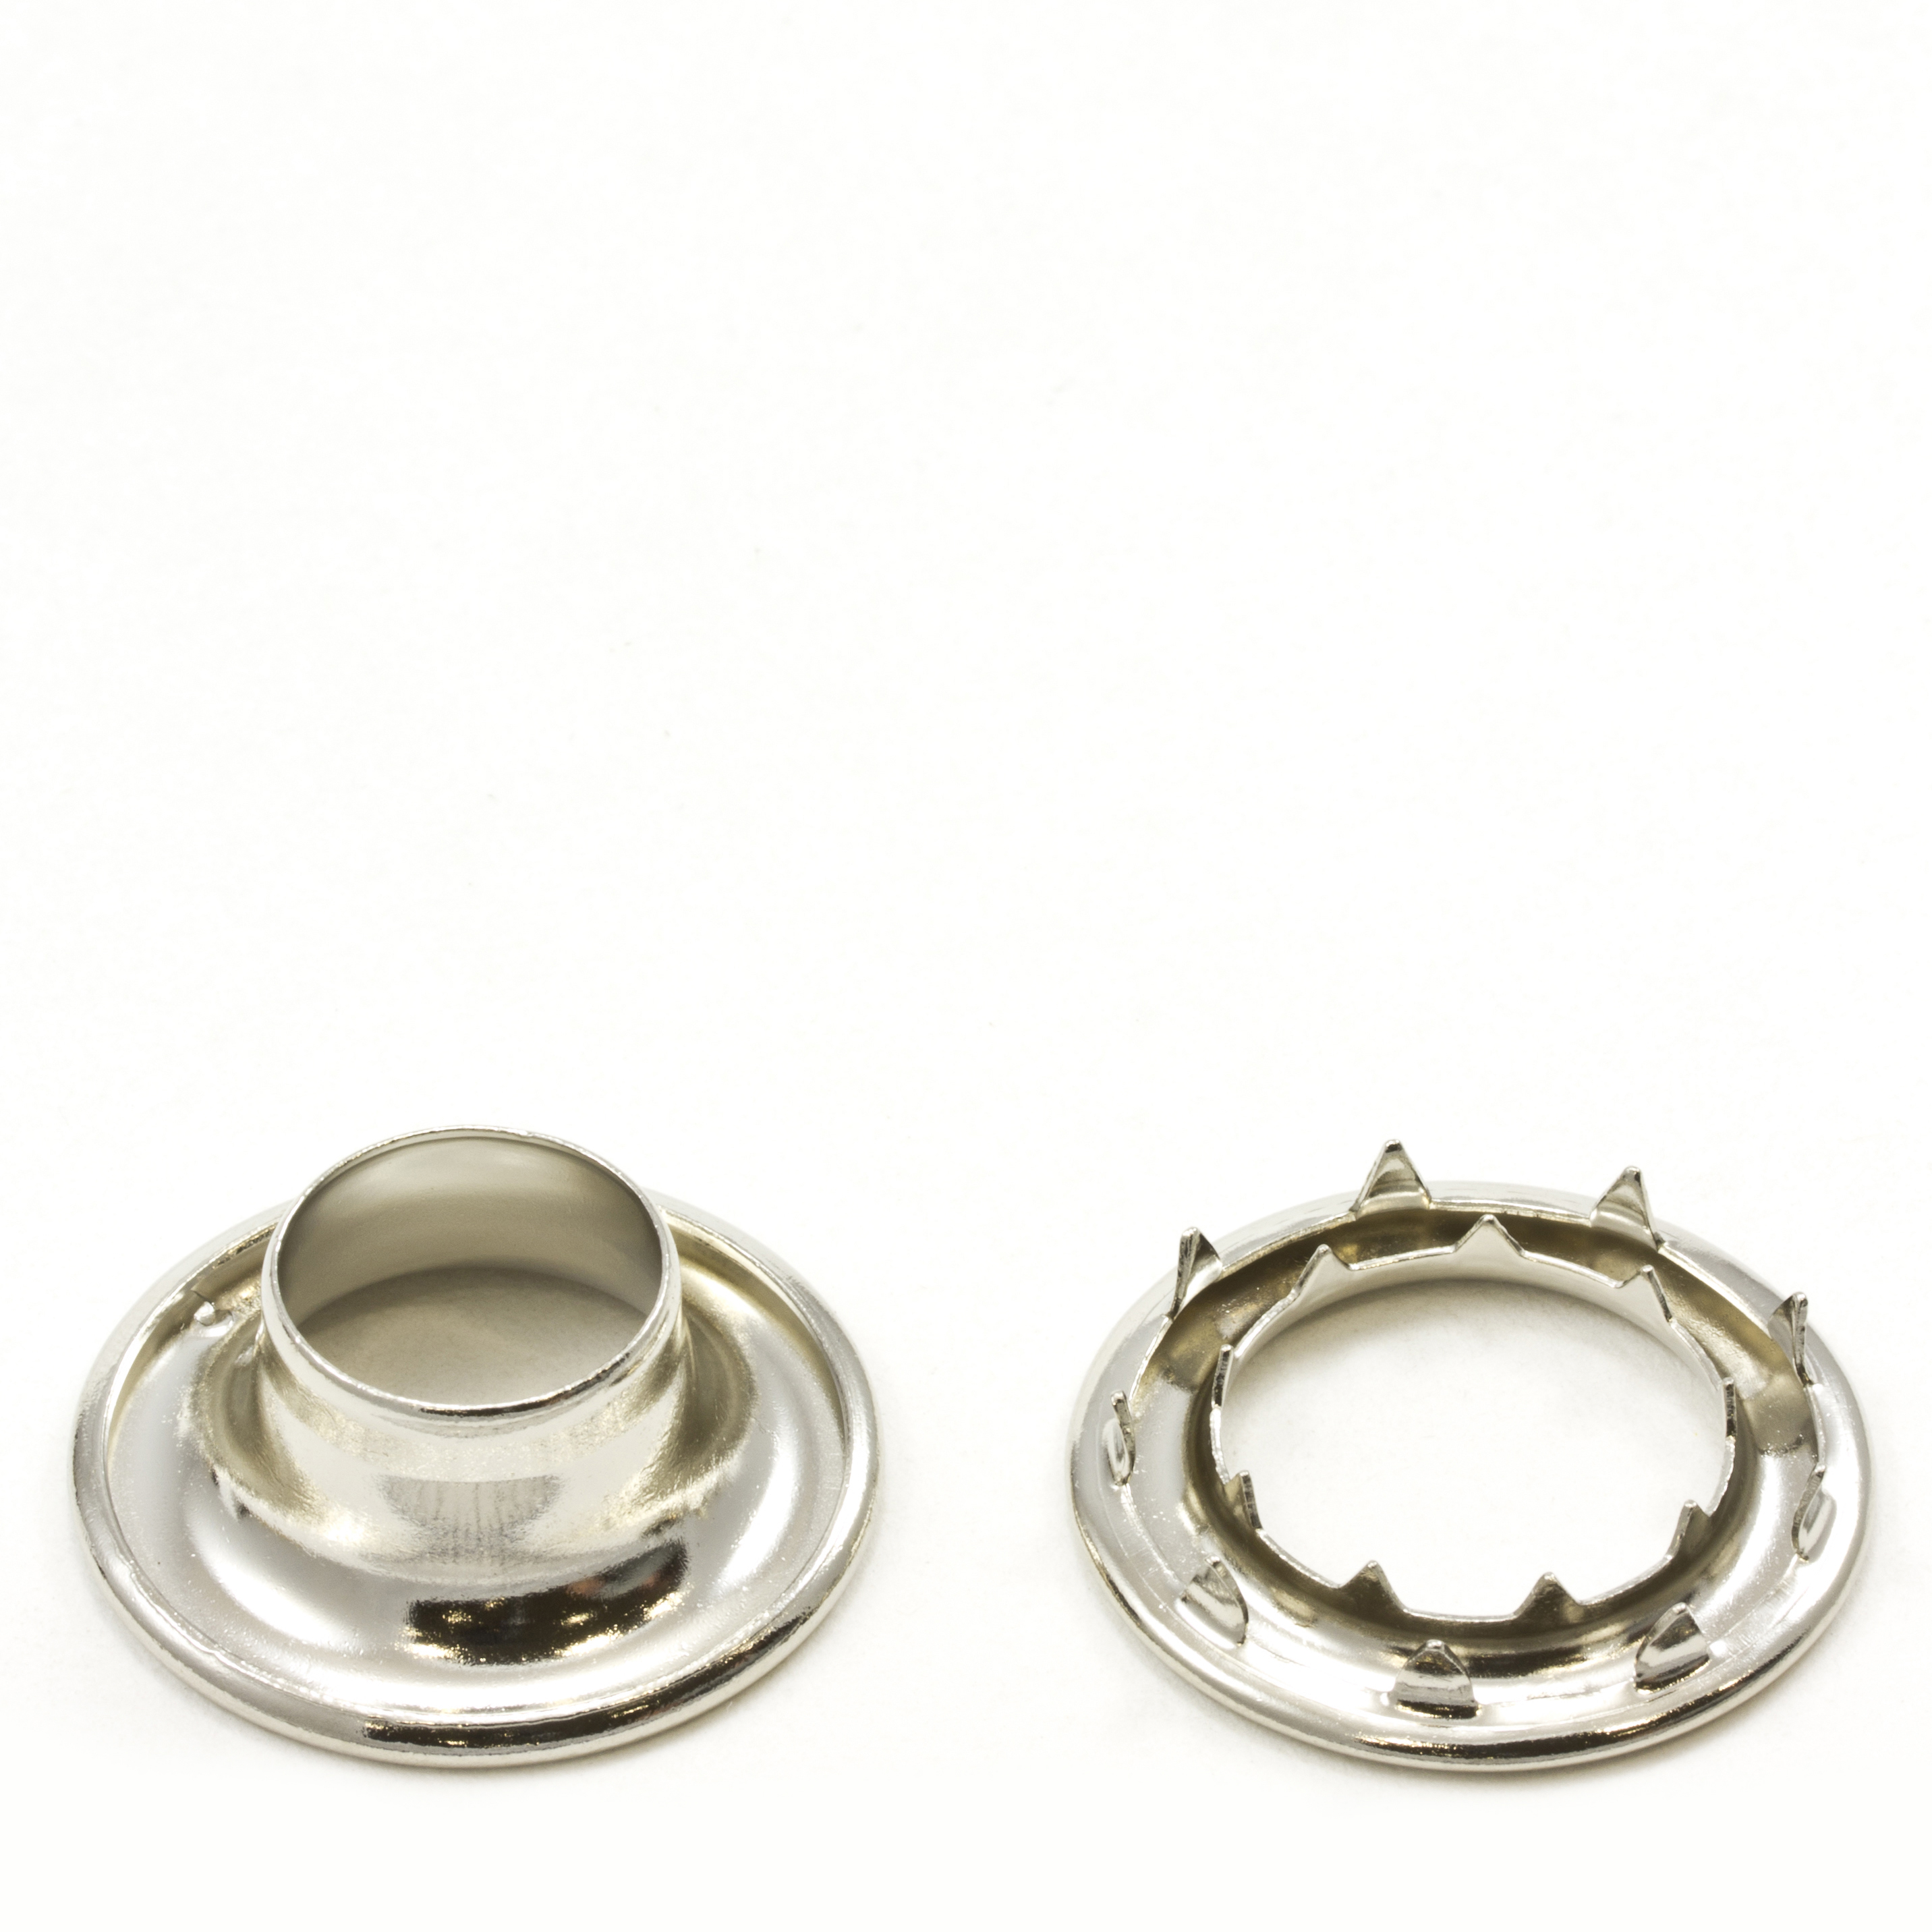 Rolled Rim Grommet with Spur Washer #5 Brass Nickel Plated 5/8